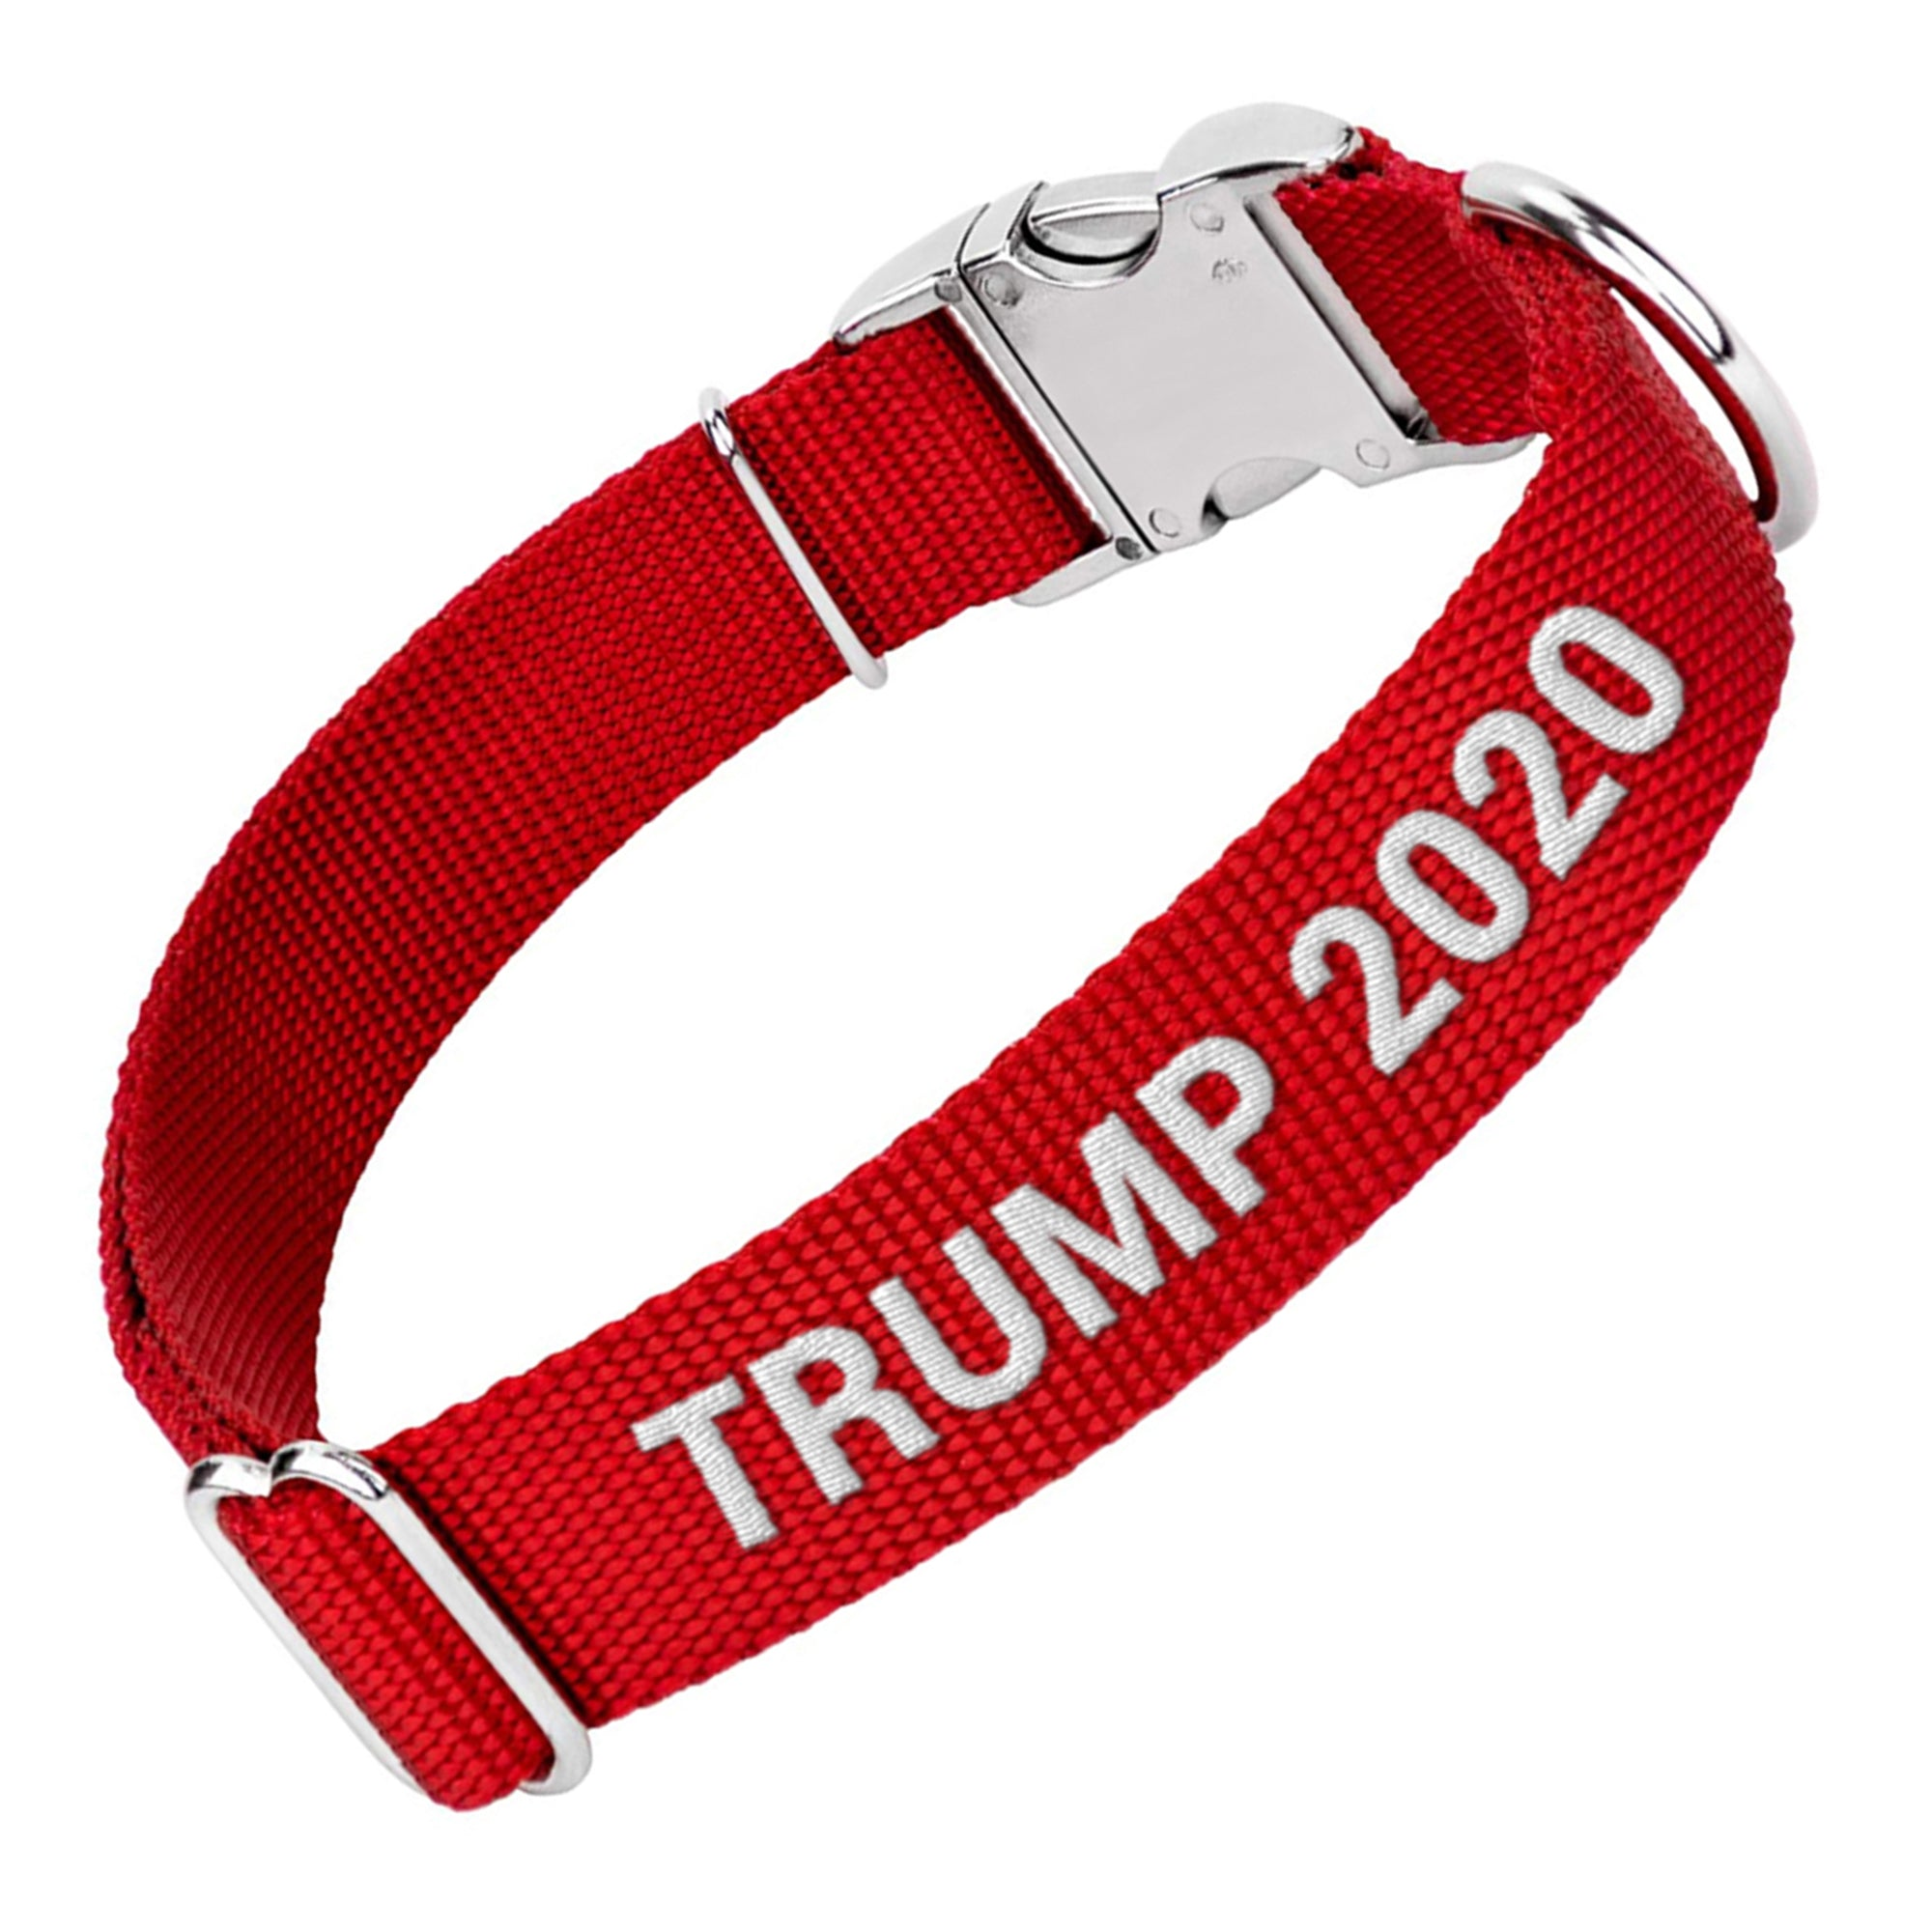 Trump 2020 Dog Collars